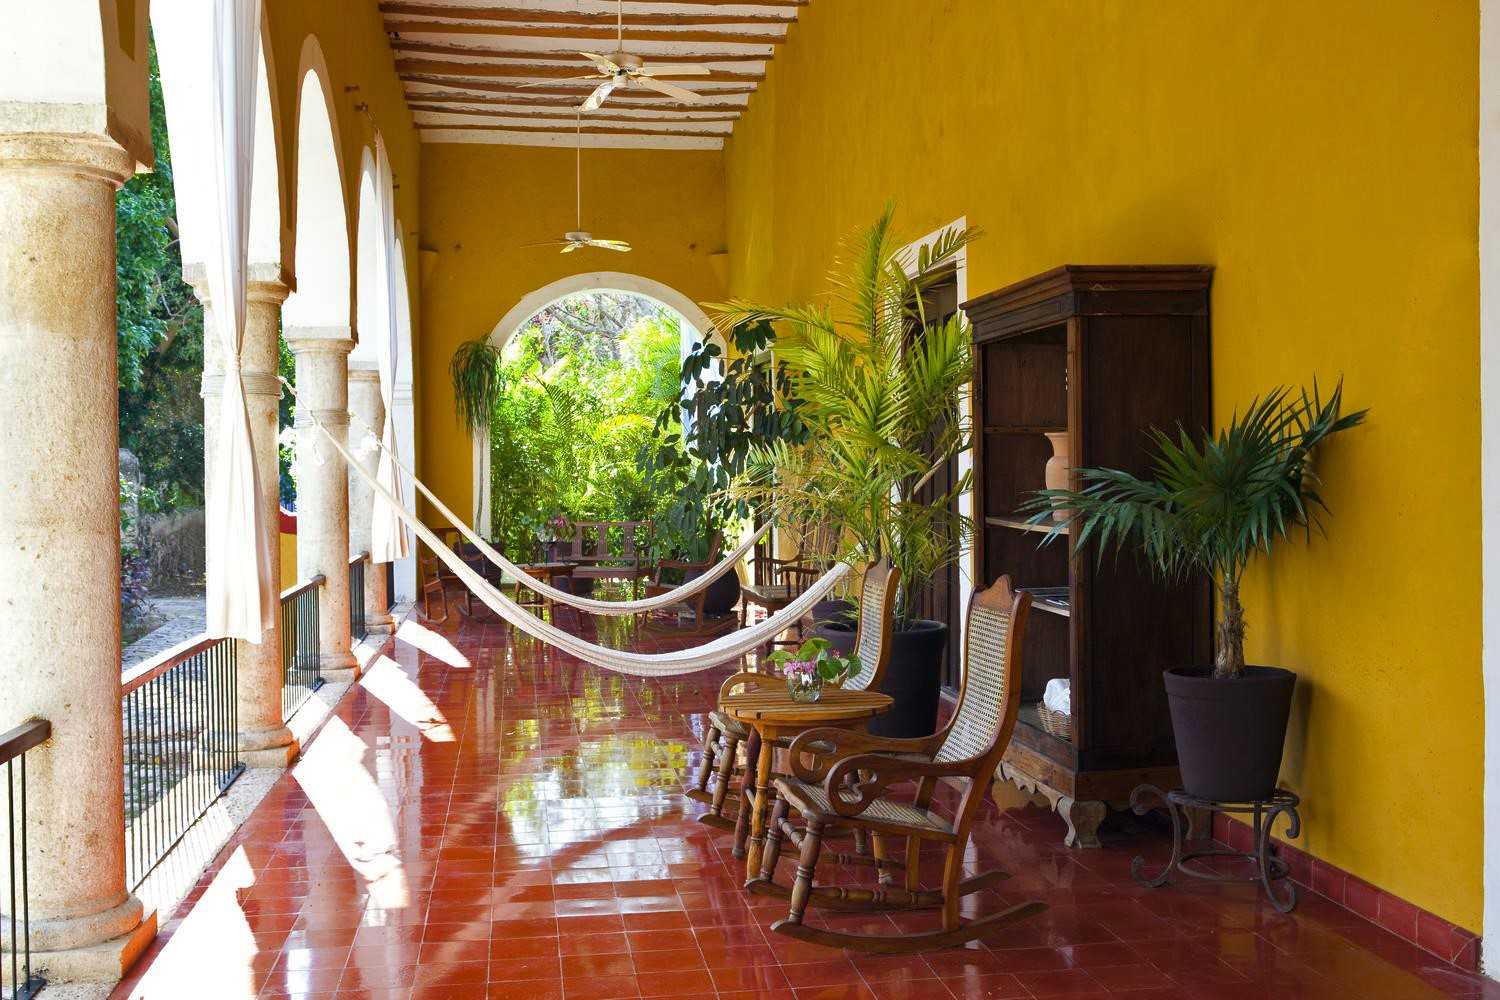 Terrace at Hacienda San Jose